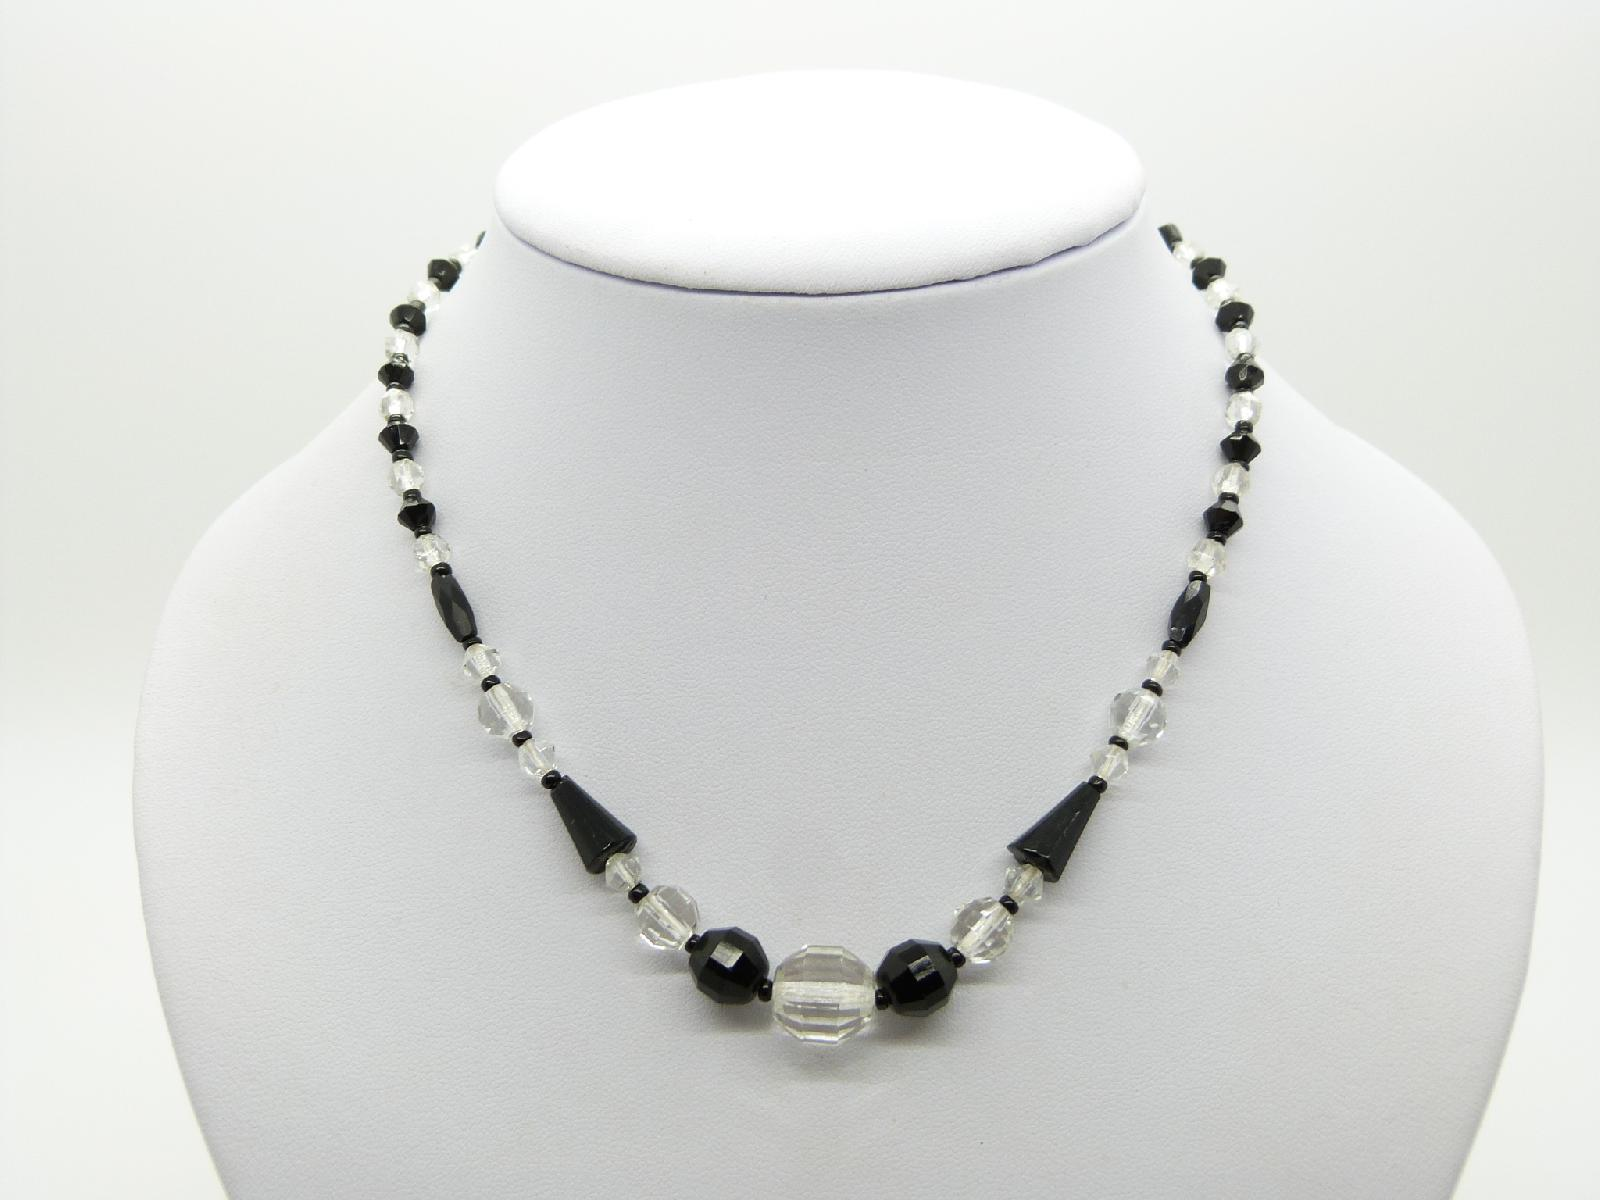 Vintage 30s Monochrome Black and White Crystal Glass Bead Necklace 43cms Long